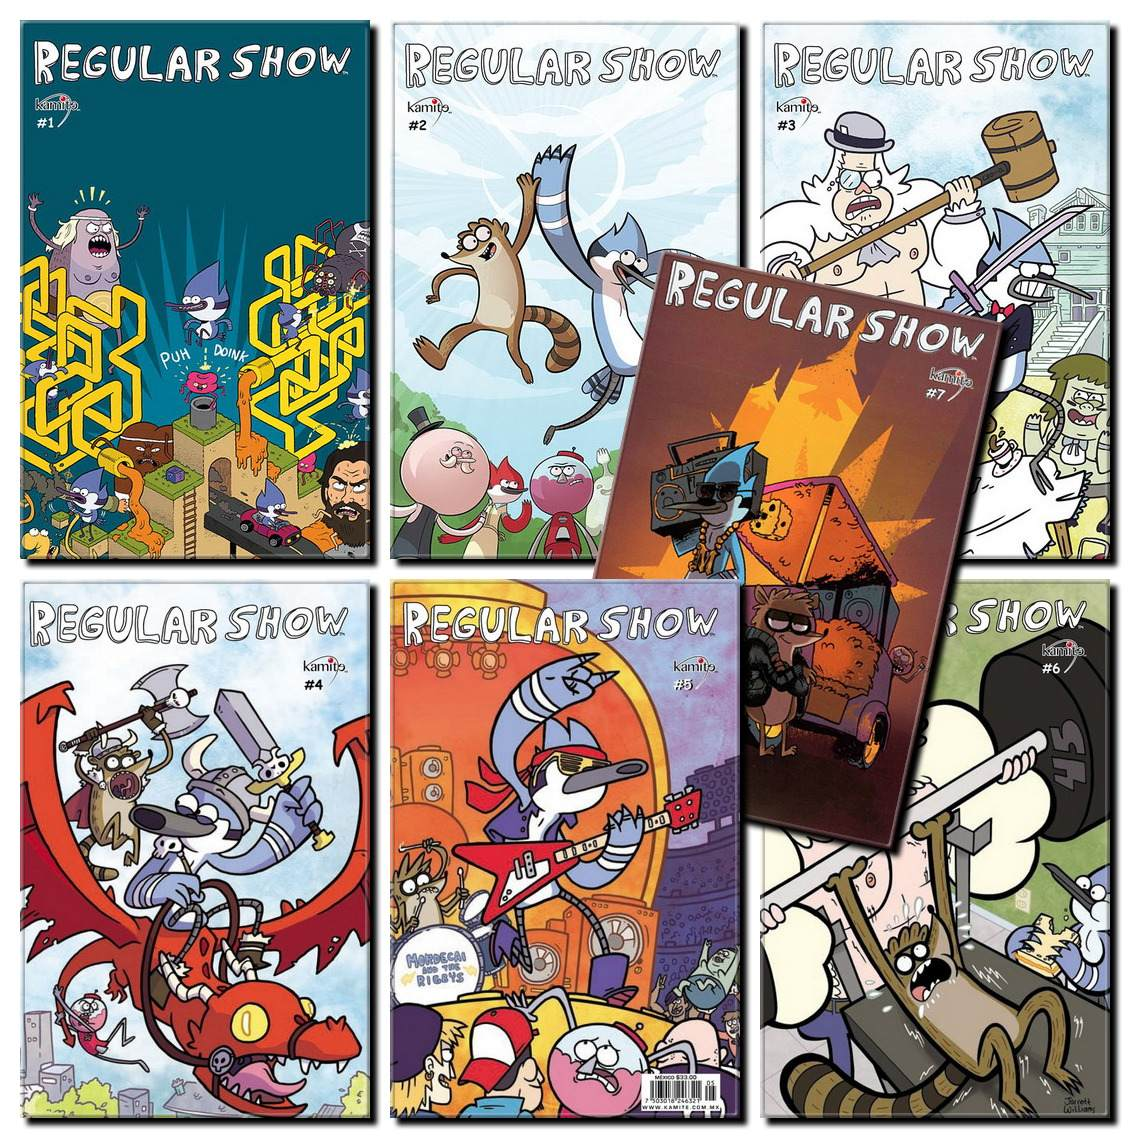 Remarkable, Regular show comics for the